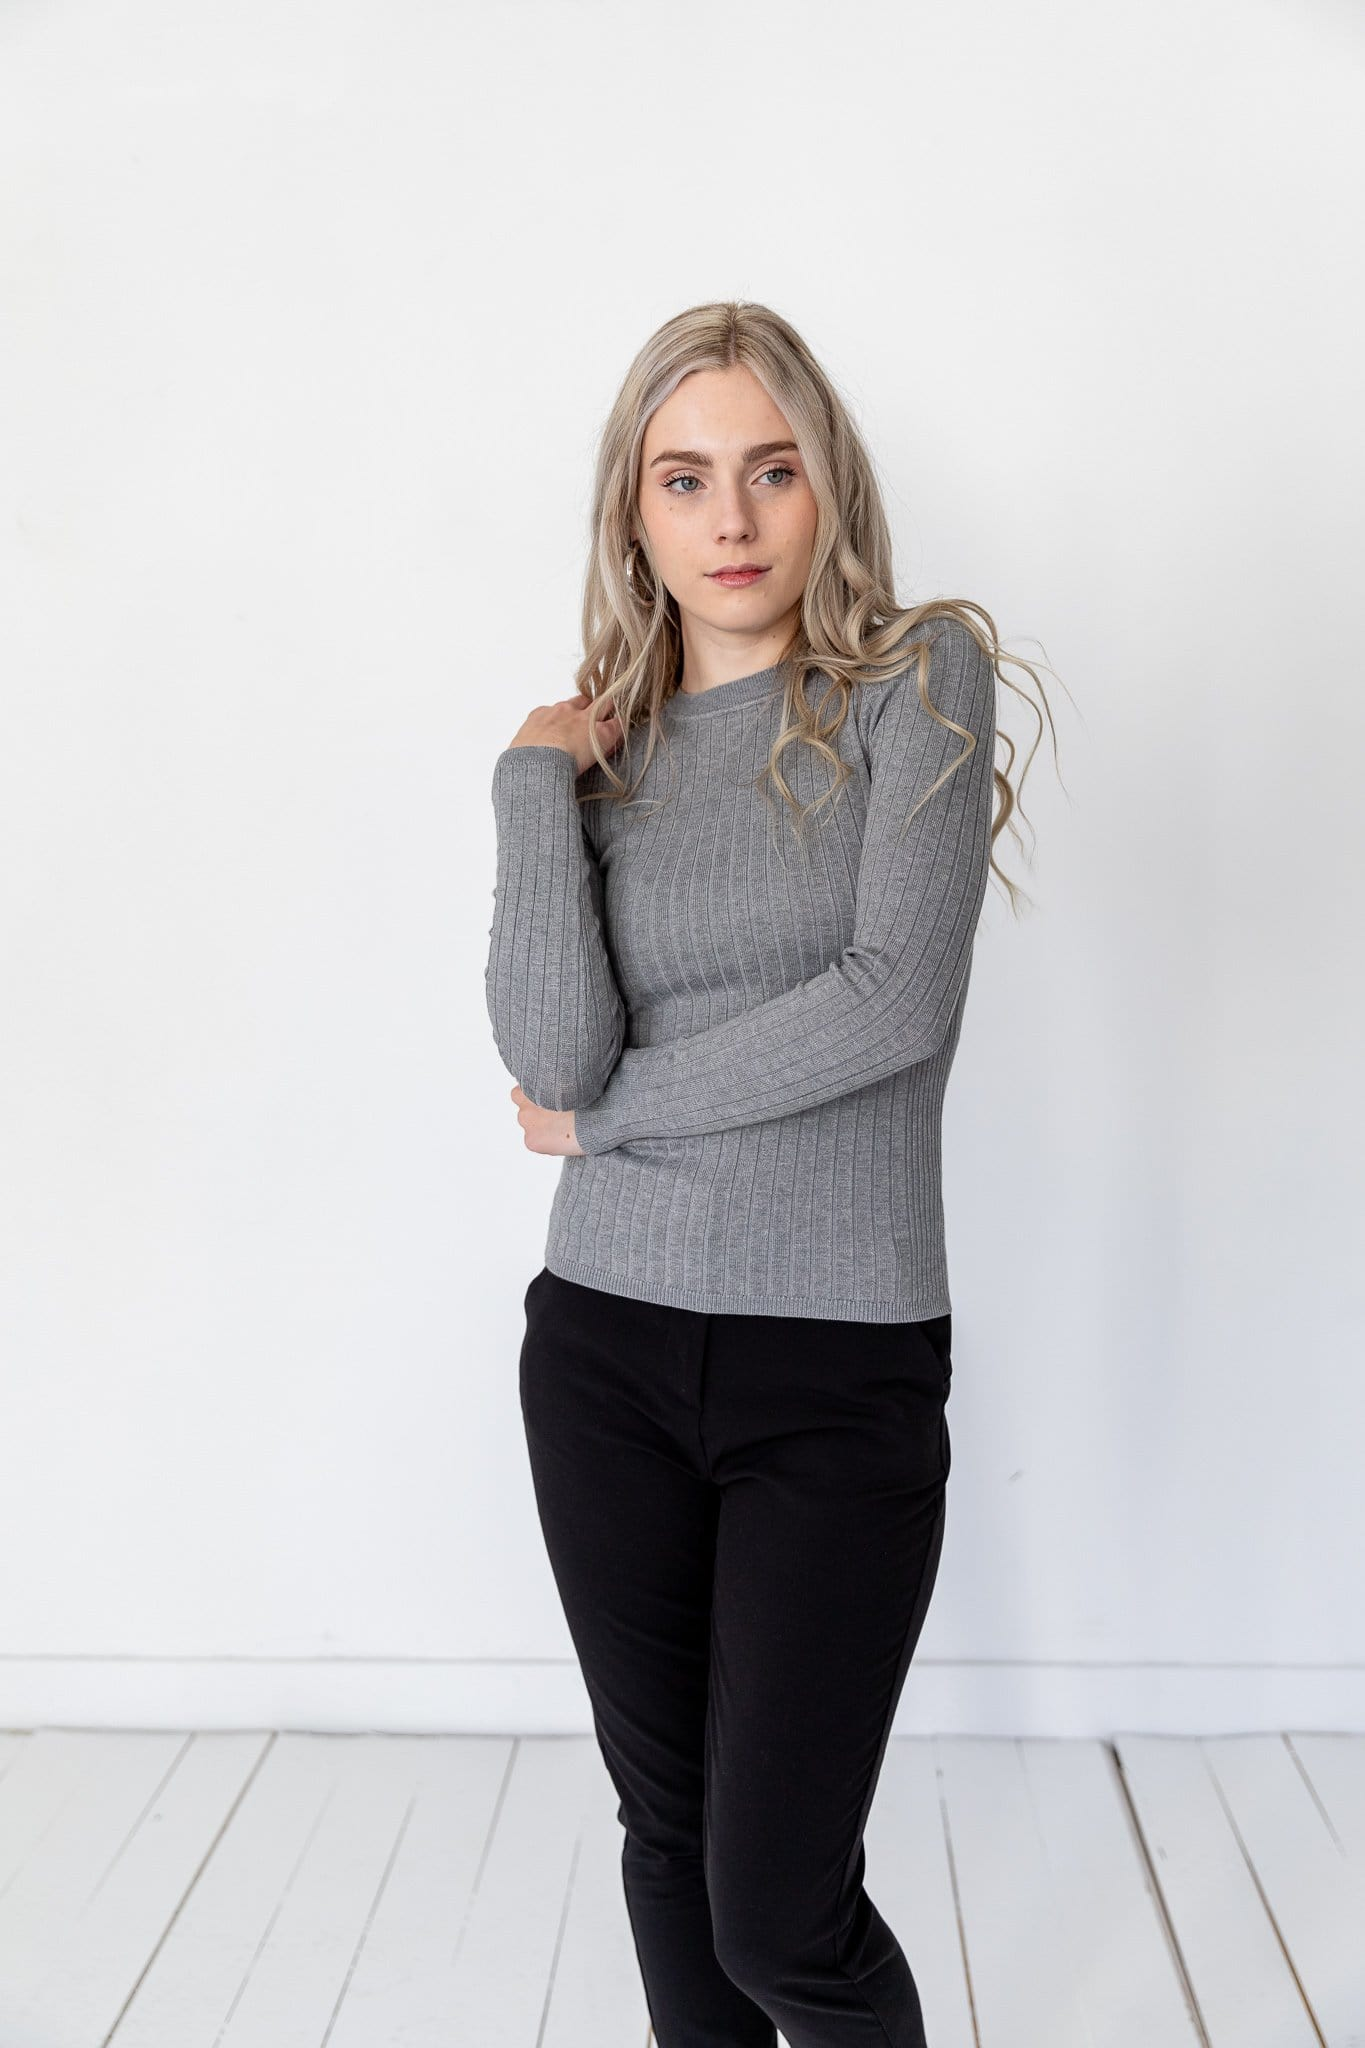 The Sadler Fitted Rib Sweater in Black, Heather Grey, Olive and Wine